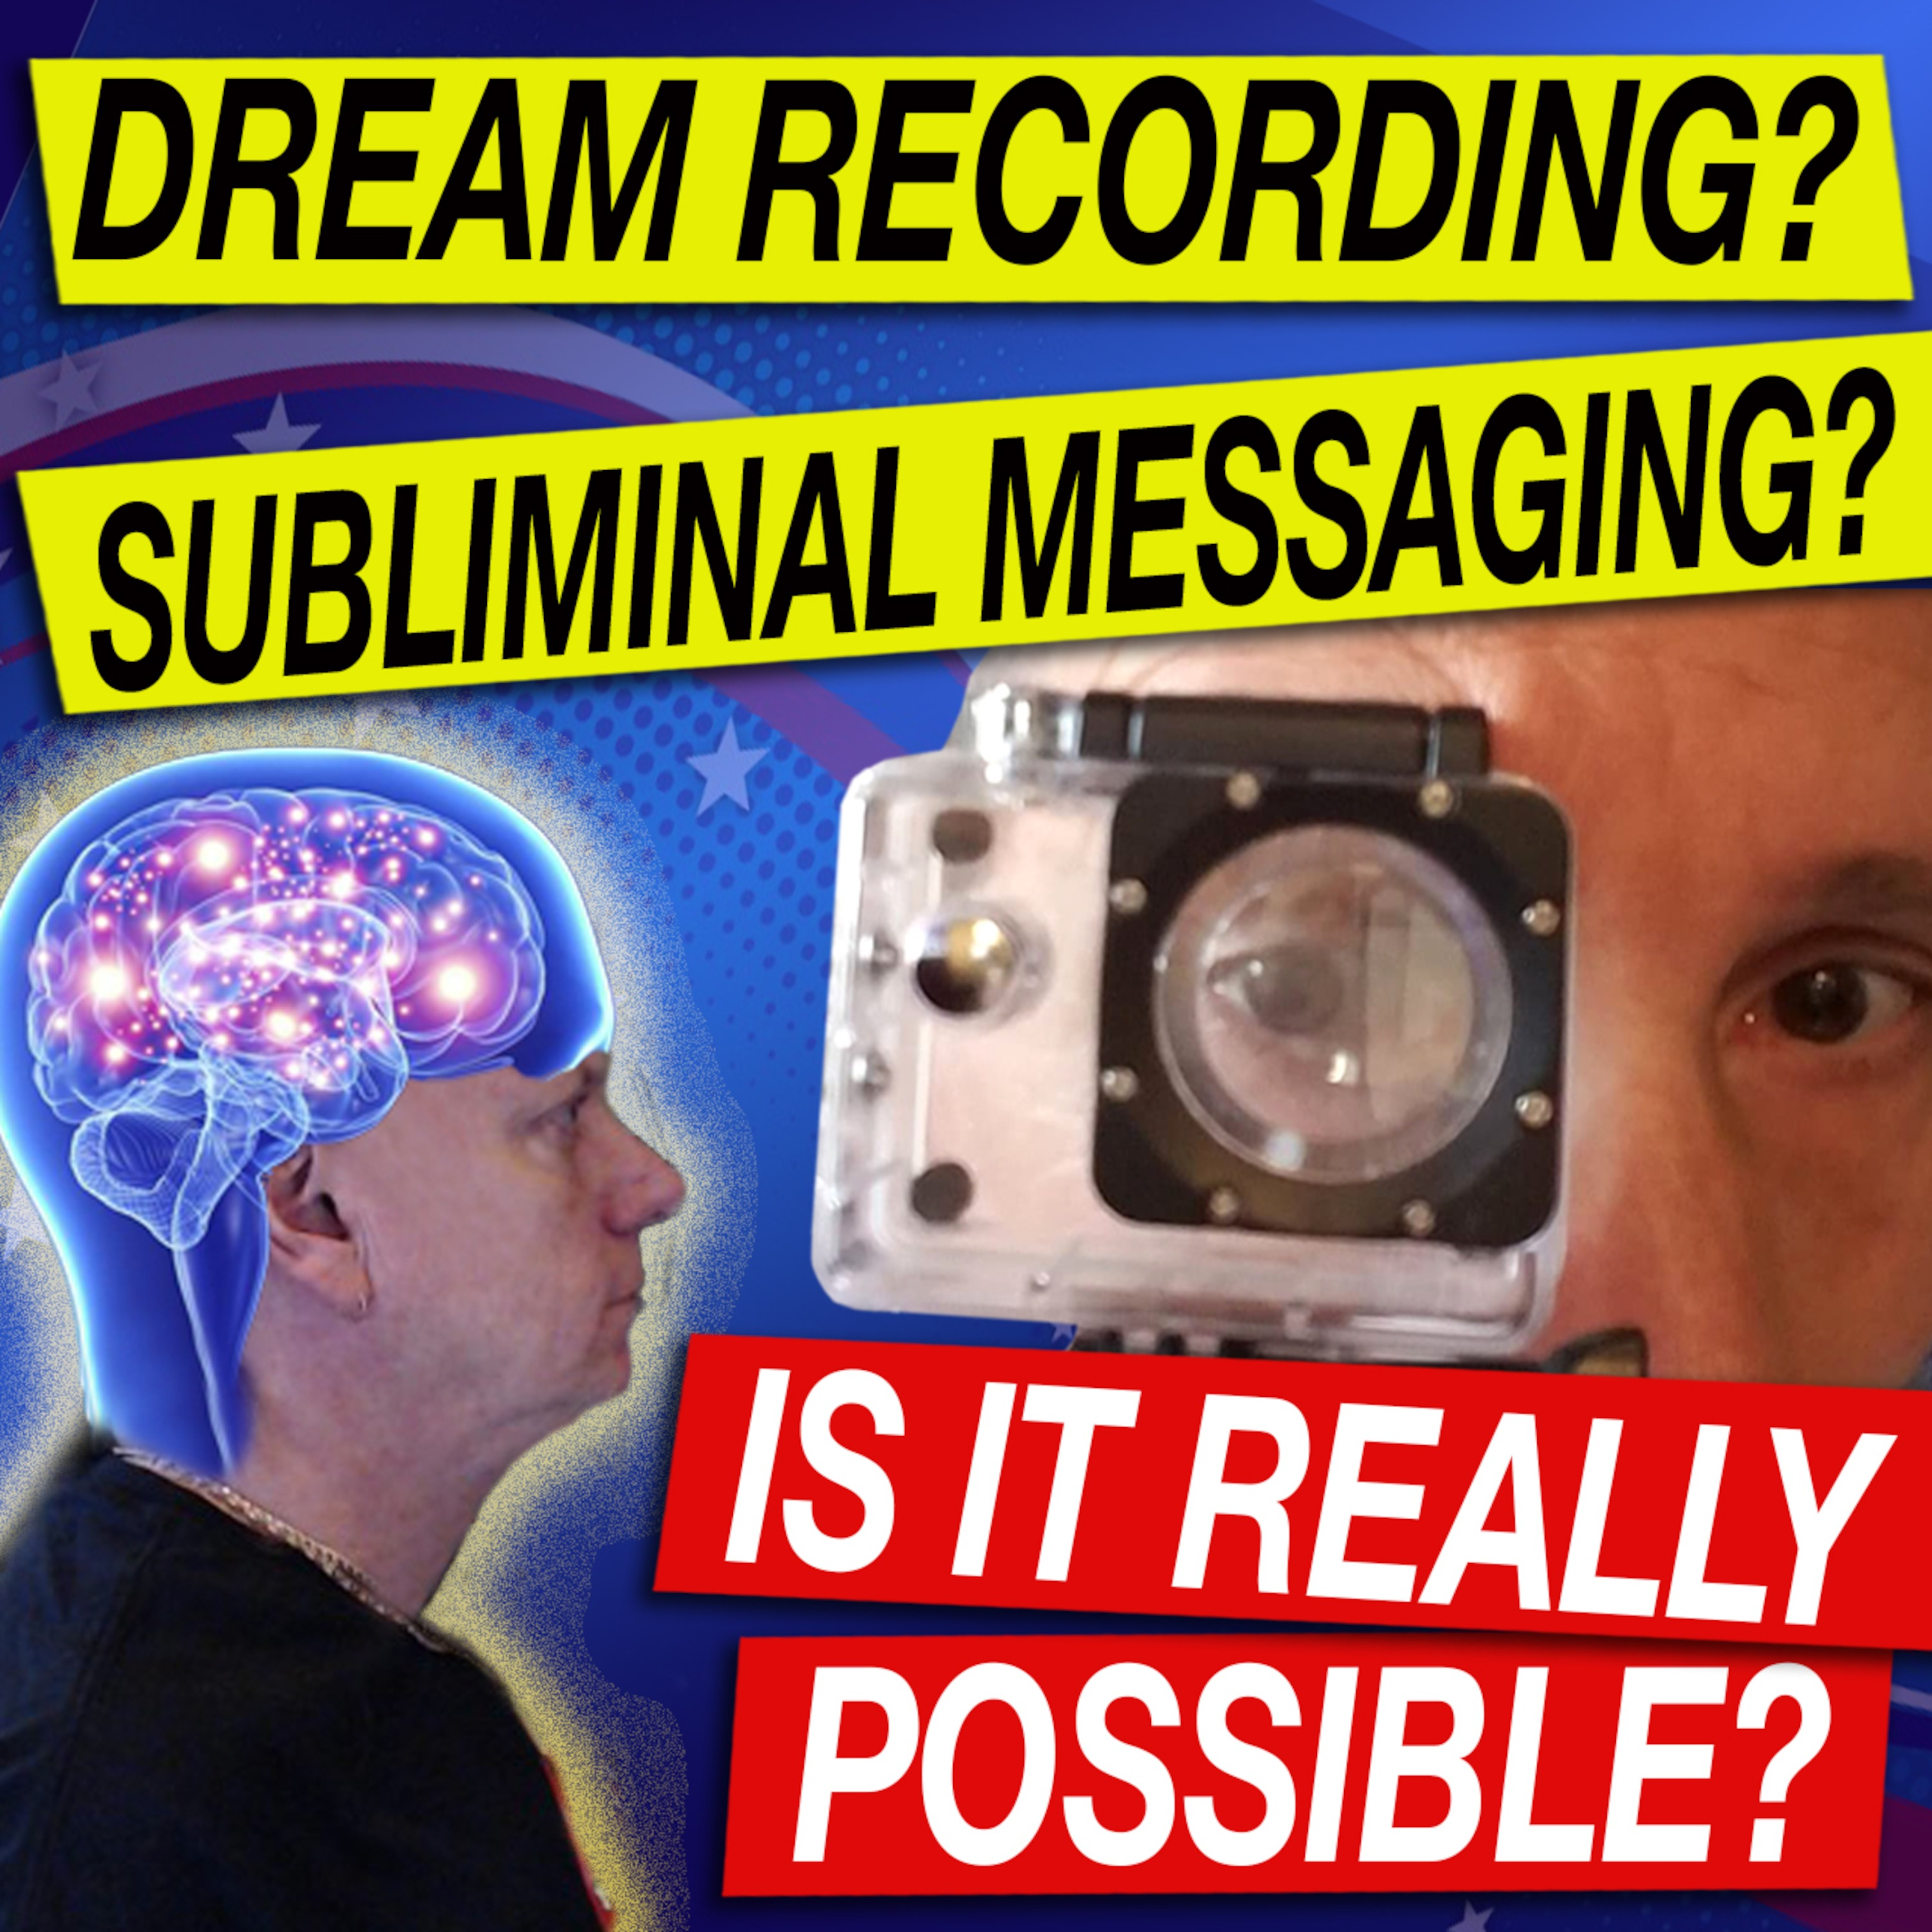 Dream Recording Subliminal Messaging, Is It Really Possible?